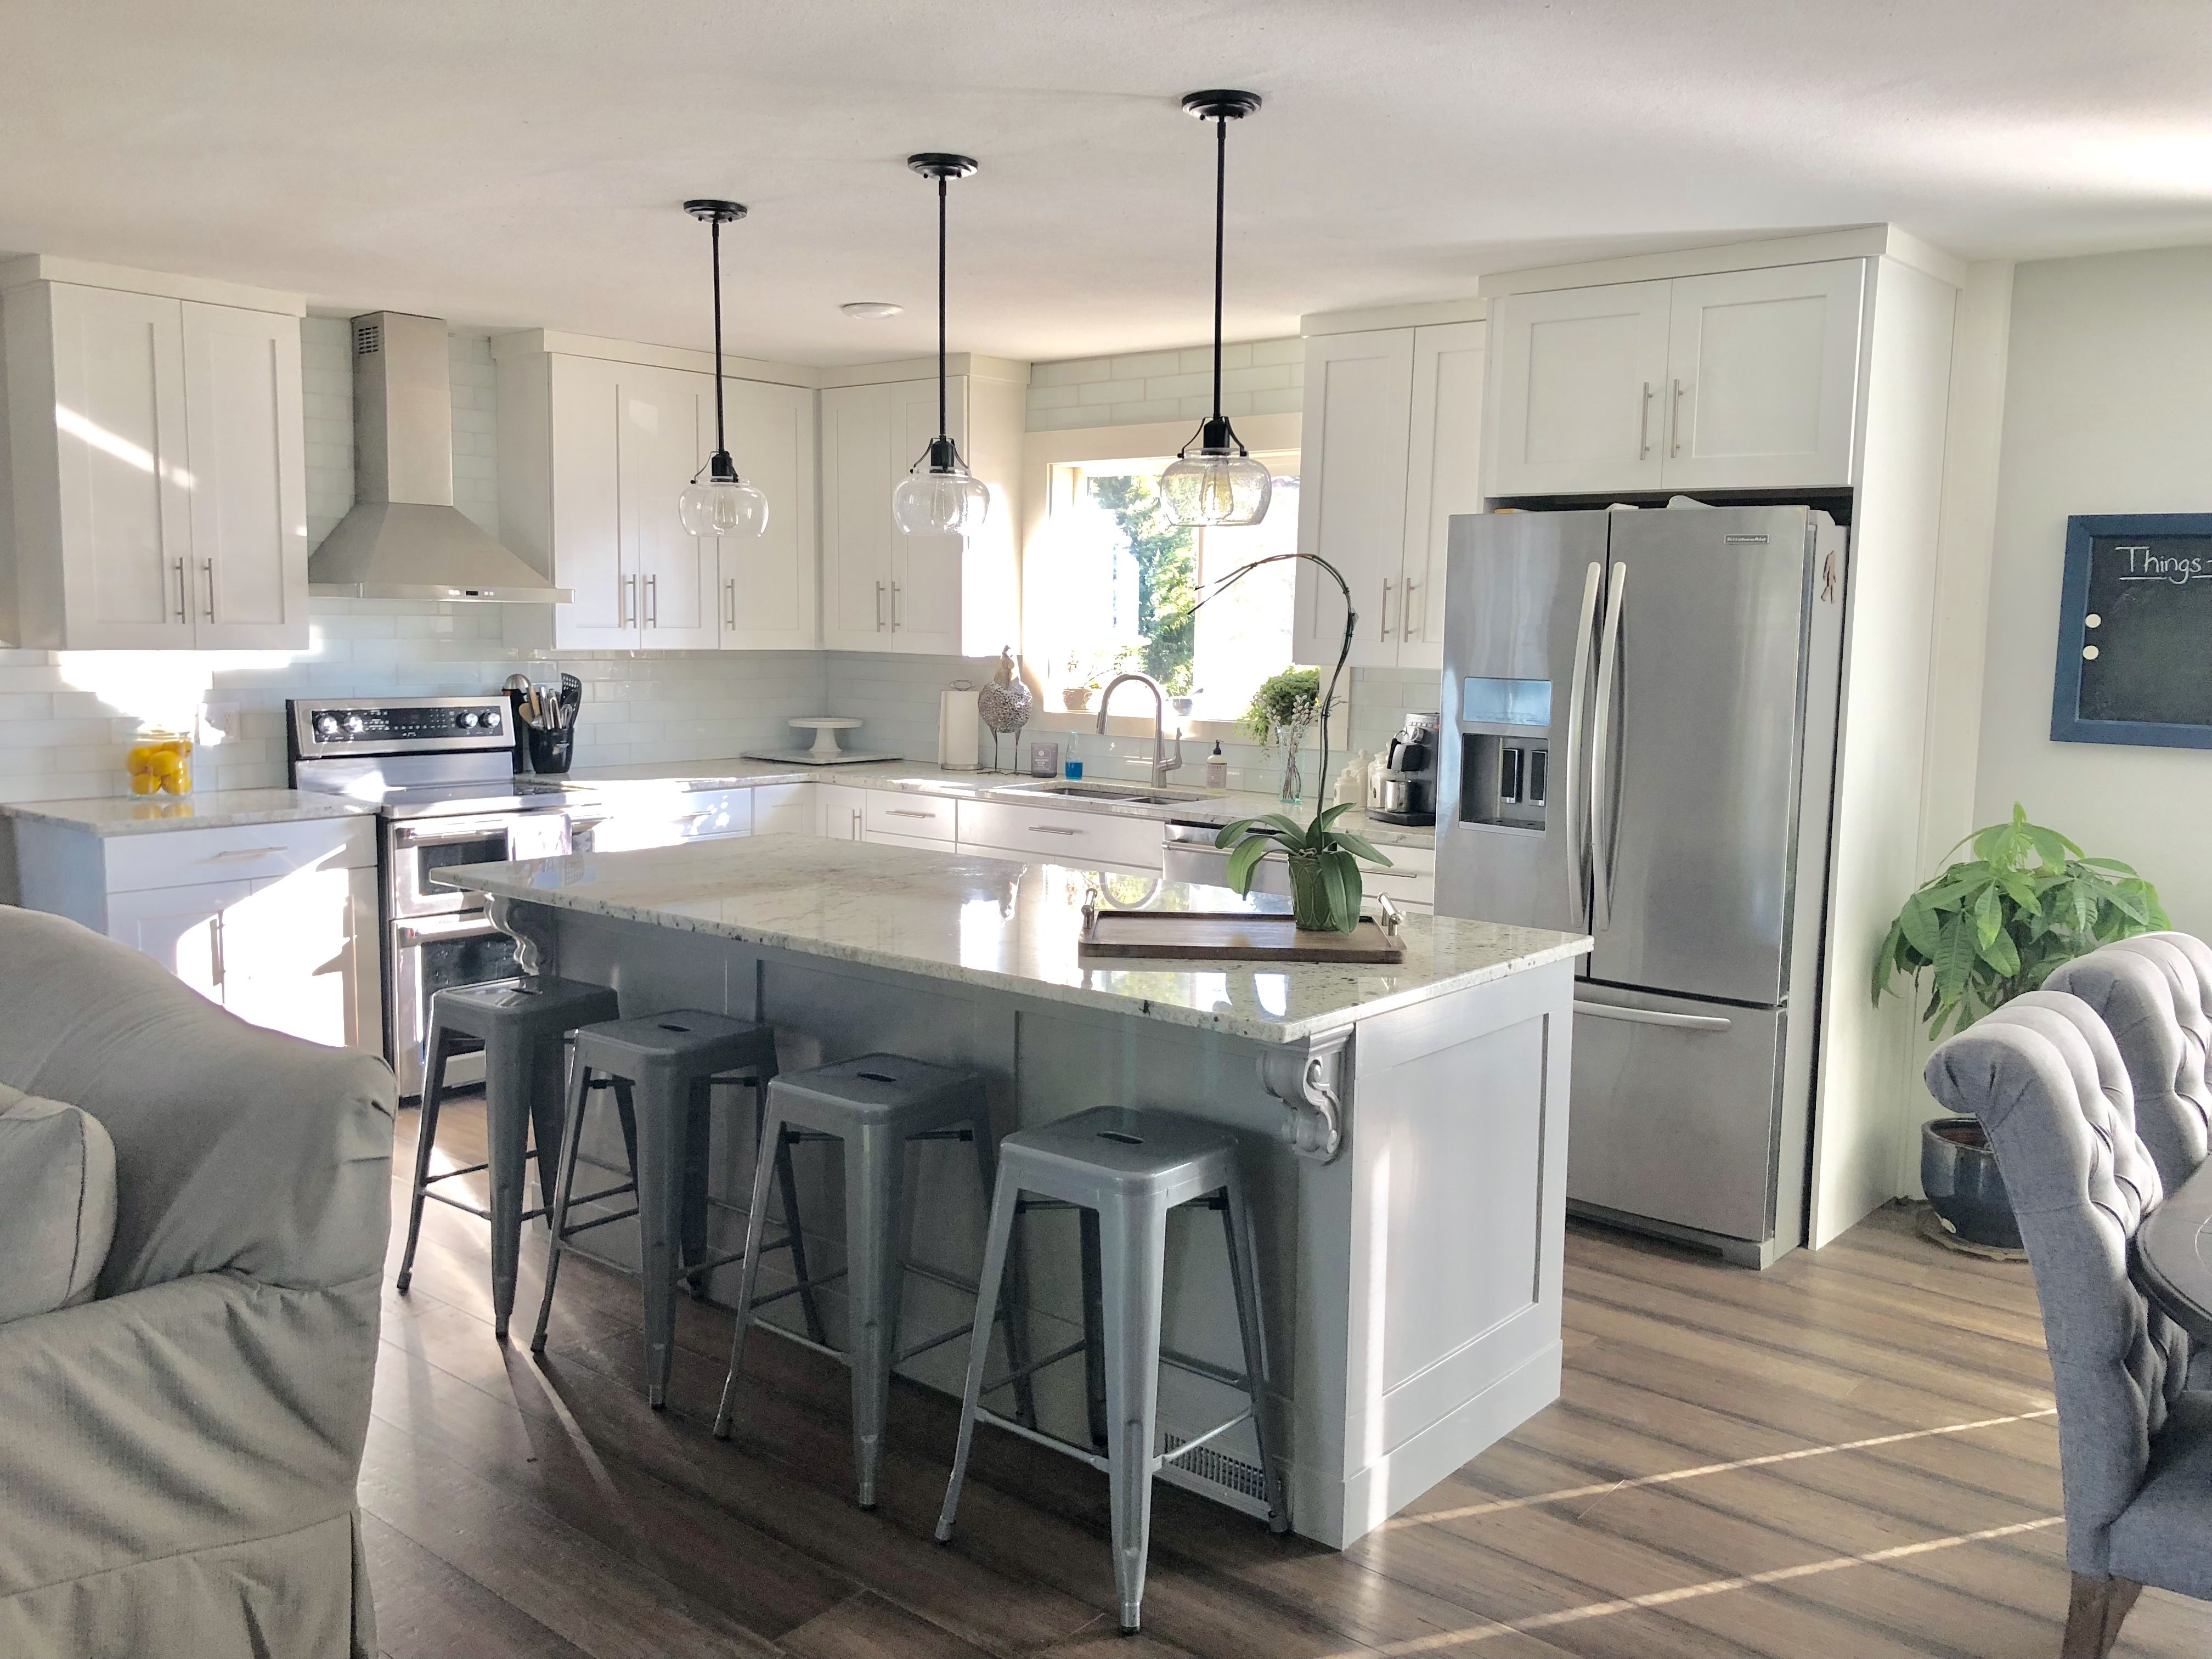 Split Level Kitchen Remodel White Shaker Cabinets Farmhouse Kitchen Remodel Galley Kitchen Remodel Diy Kitchen Remodel